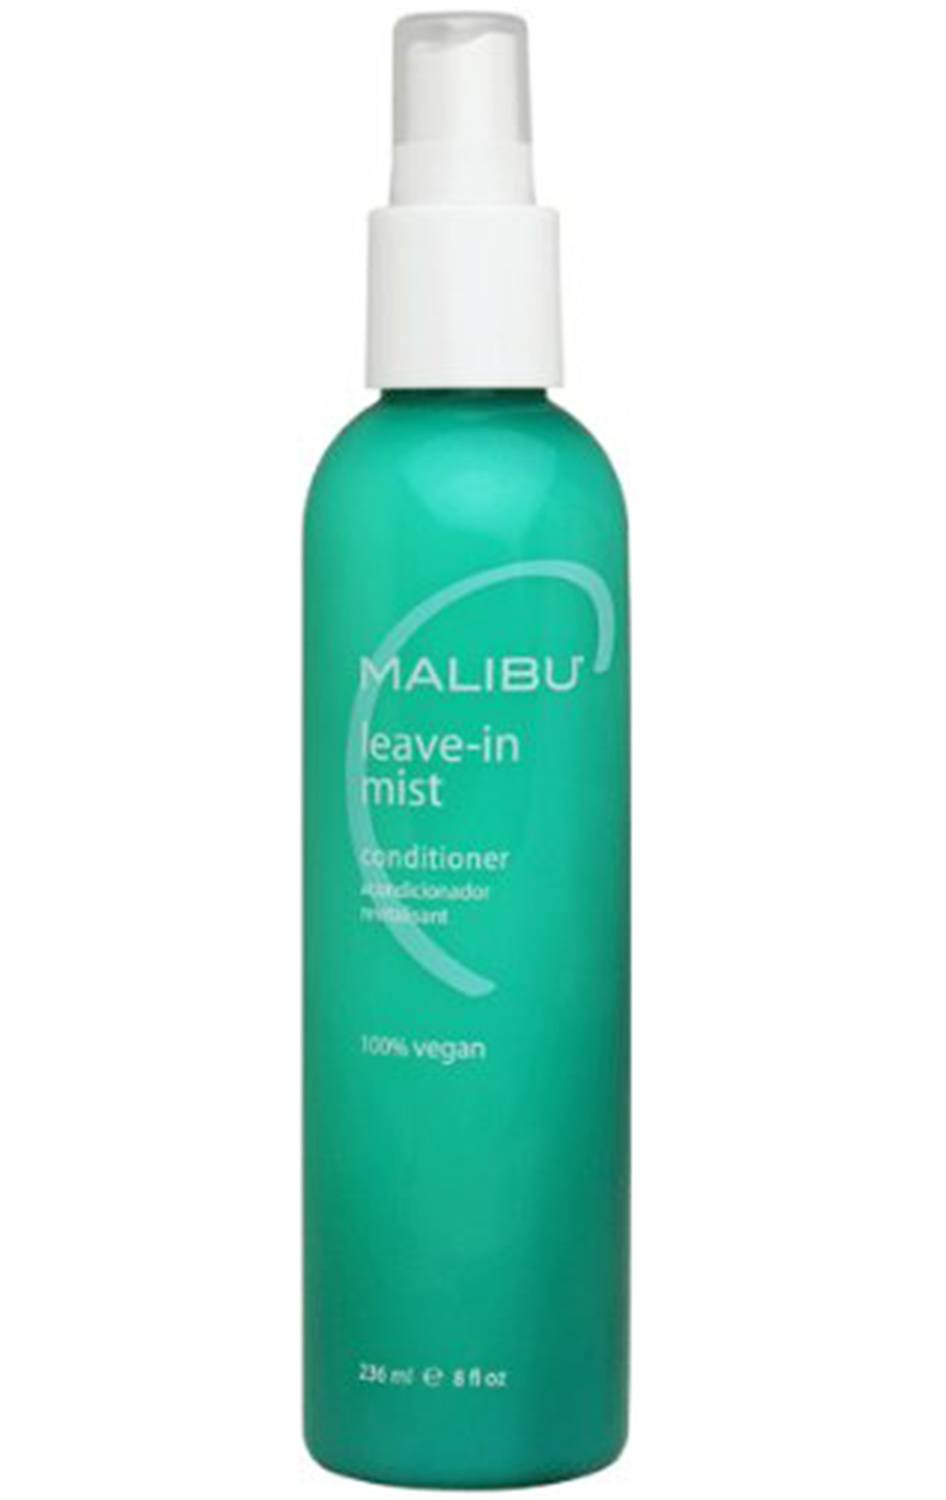 Malibu Leave-in Mist Conditioner